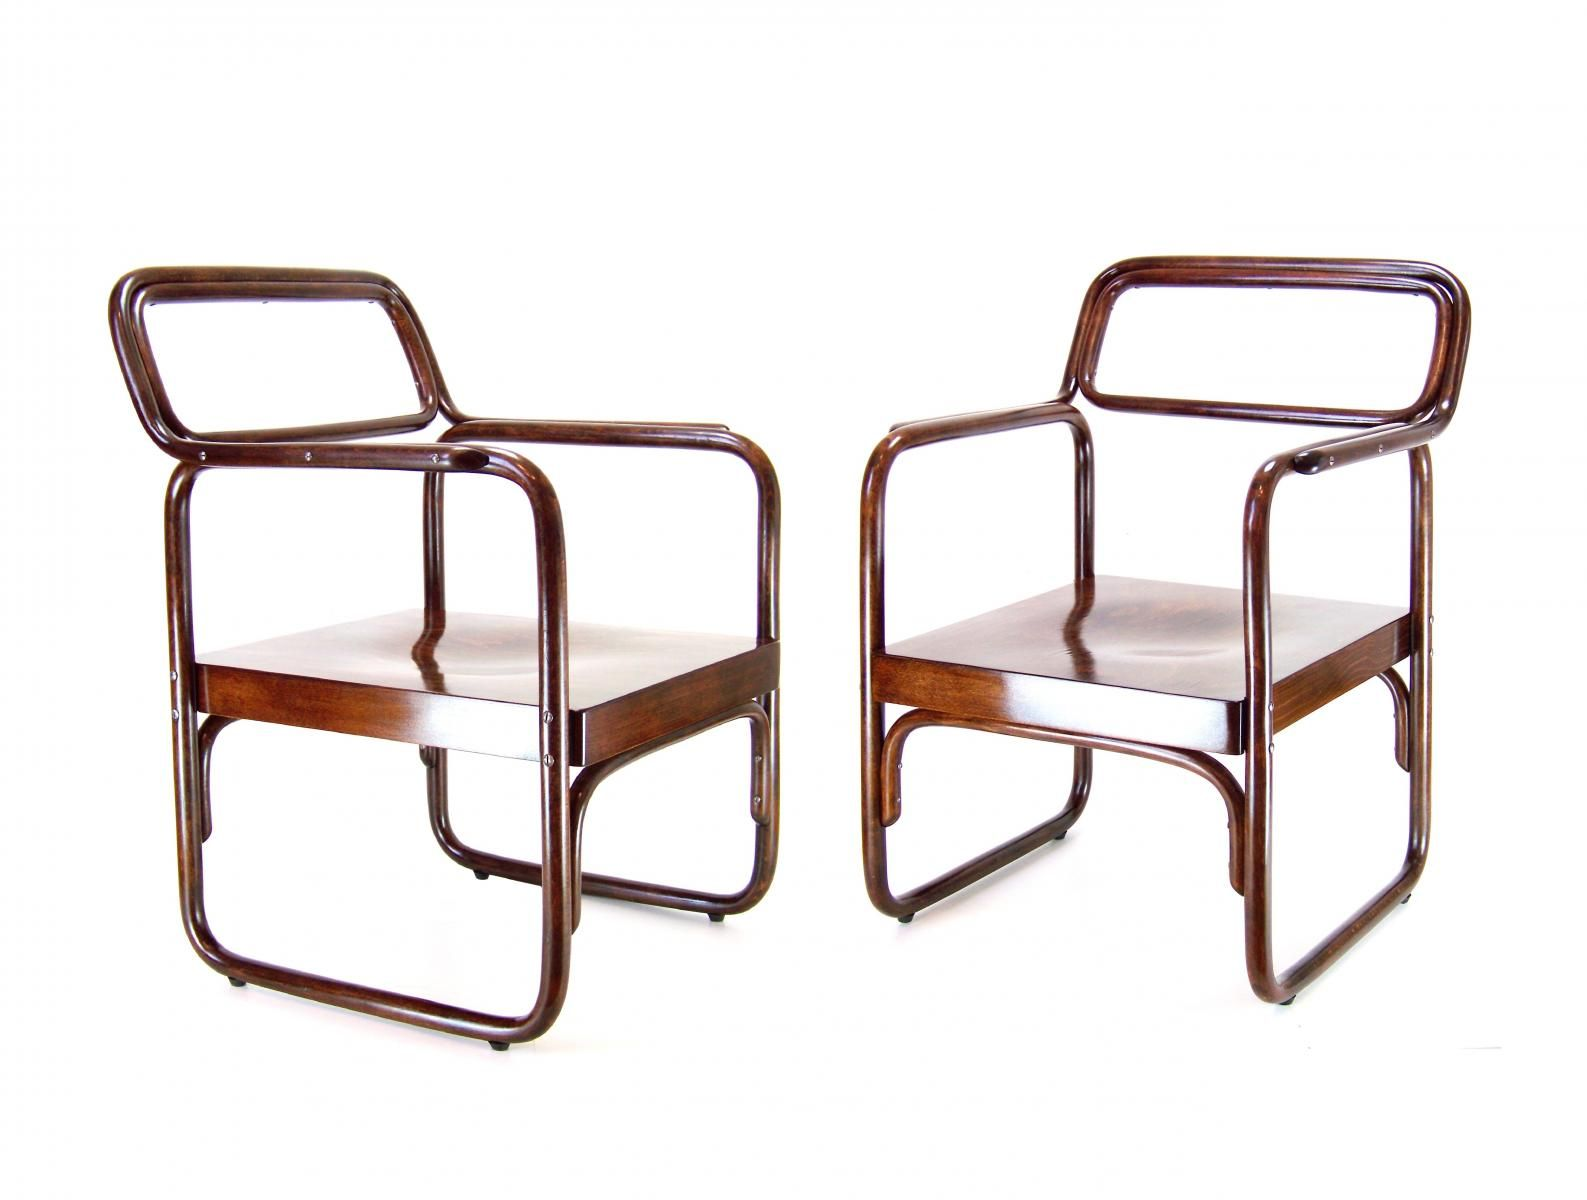 Molinari Sedie ~ 61 best assises images on pinterest lounge chairs armchairs and